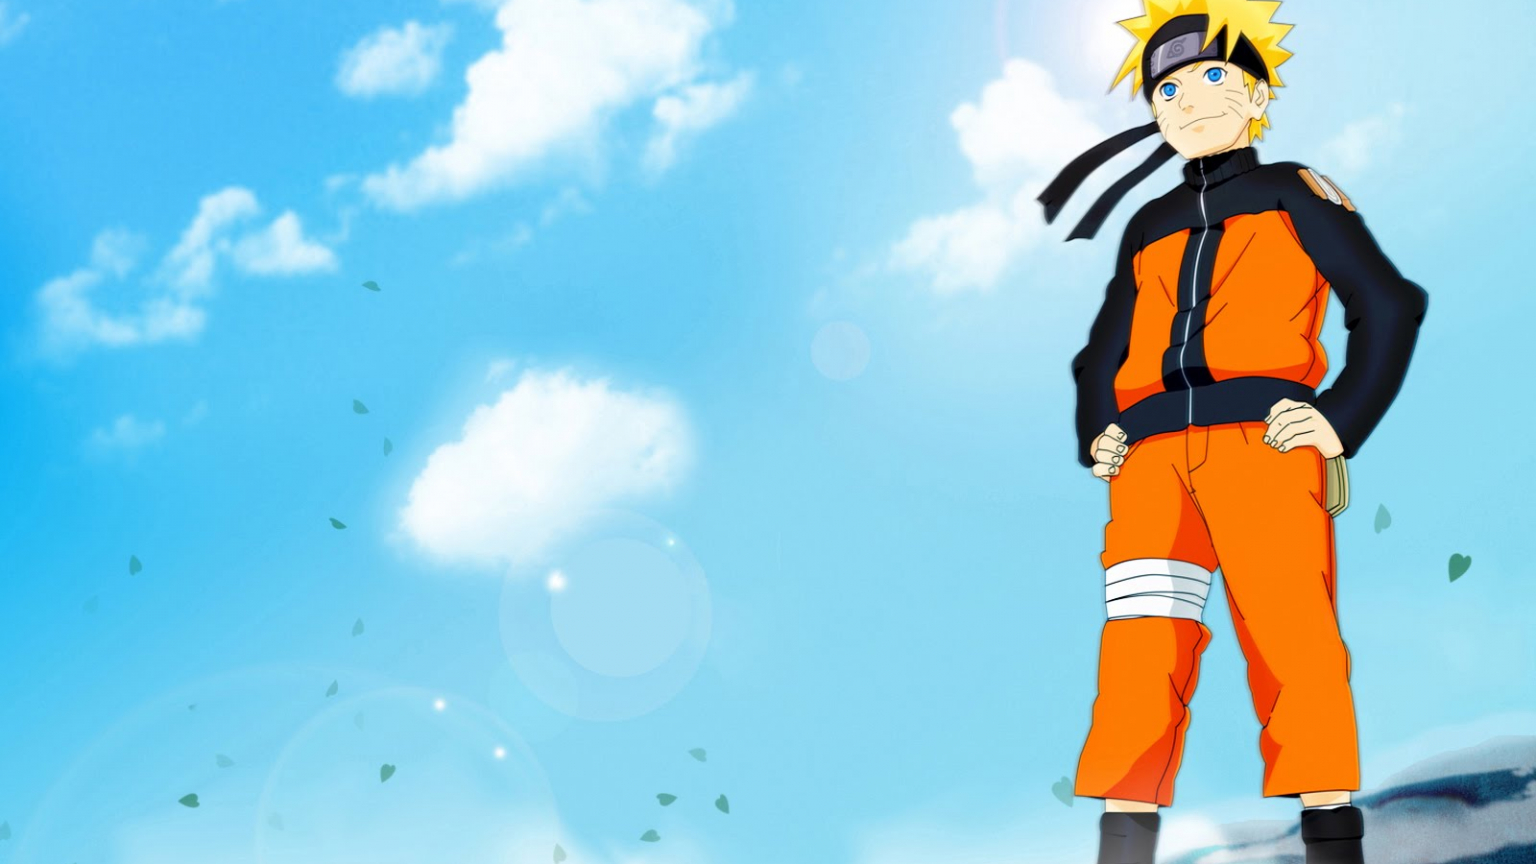 Free Download Naruto Hd Wallpapers 1600x1200 For Your Desktop Mobile Tablet Explore 75 Naruto Background Naruto And Sasuke Wallpaper Naruto Wallpapers Hd